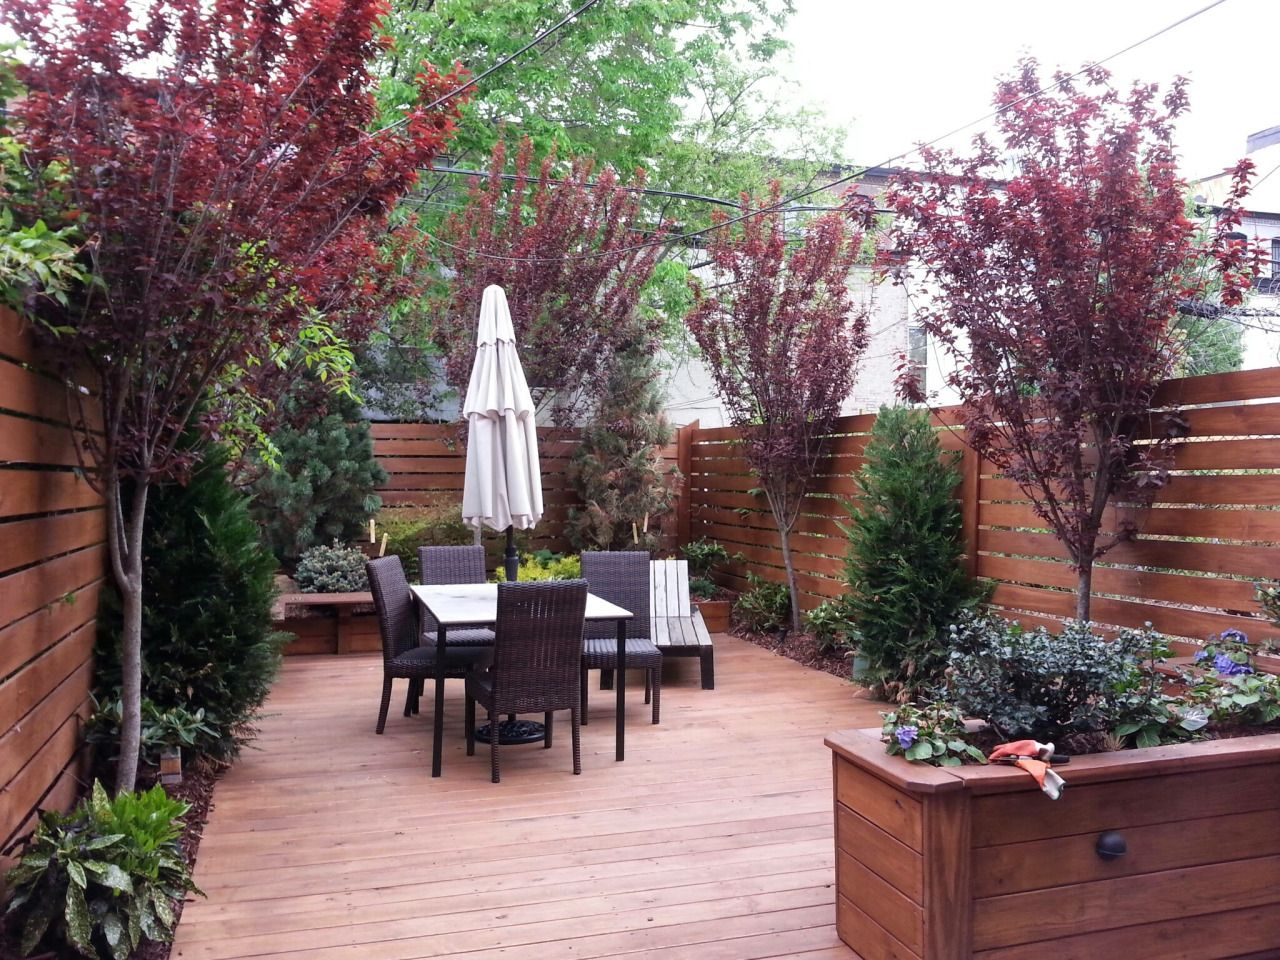 Urban Small Rear Yard Landscape Design By NewYorkPlantings Garden Designers  NYC Custom Built Brooklyn Brownstone Rear